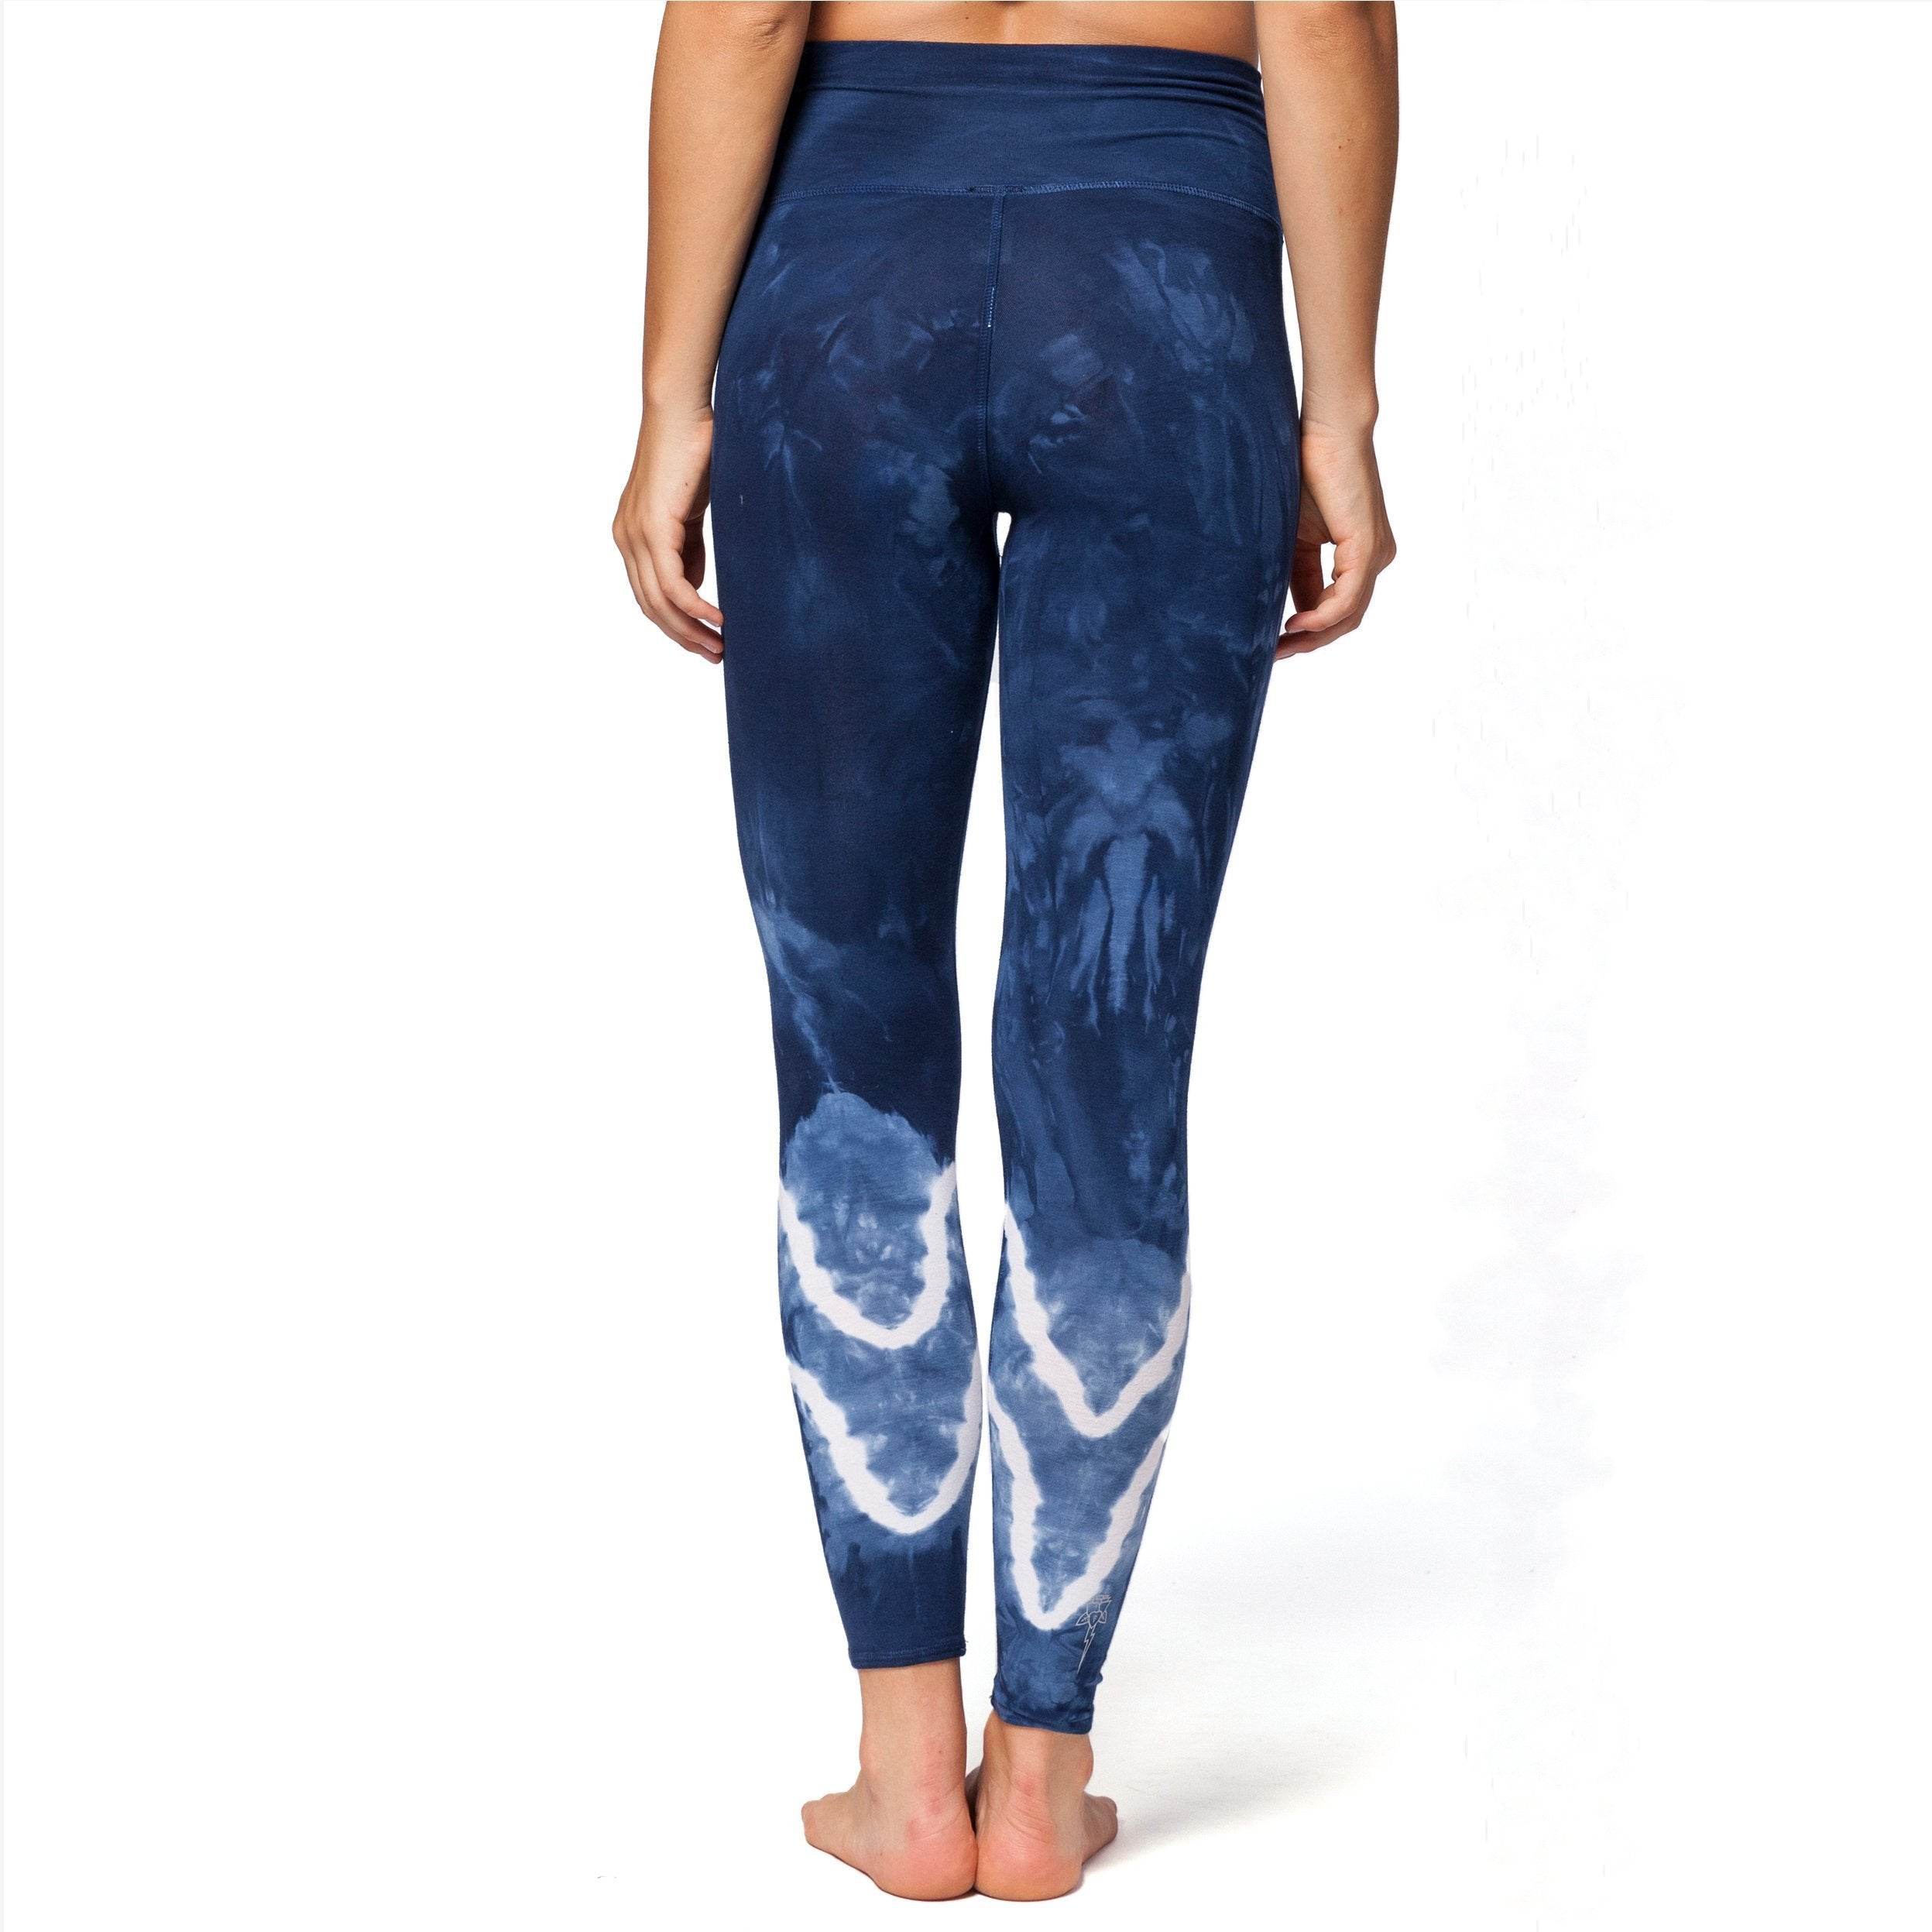 Legging Sunset Indigo